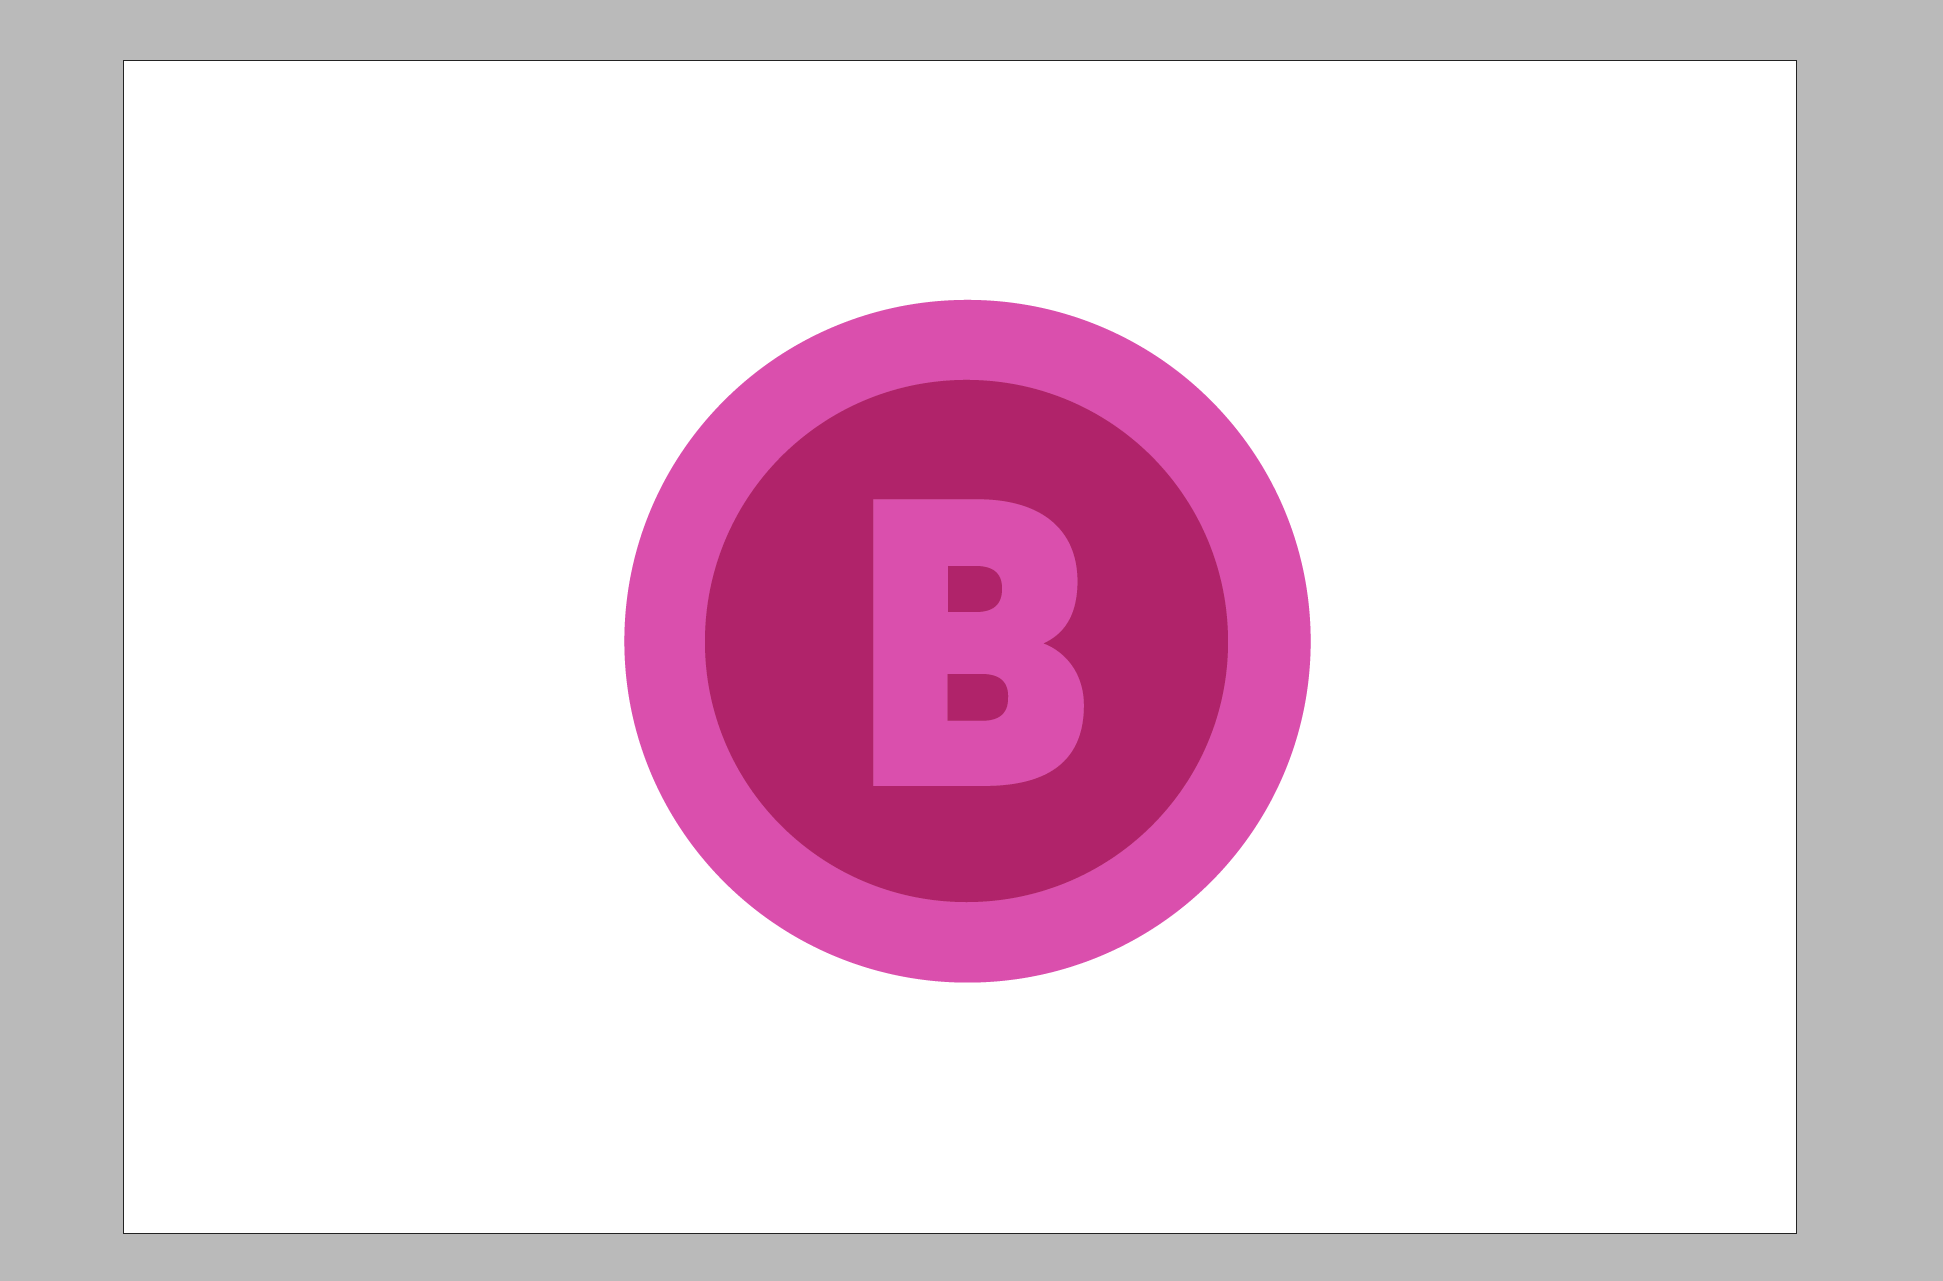 Your White items will look magenta, but that is for display only. It will not affect the final design.